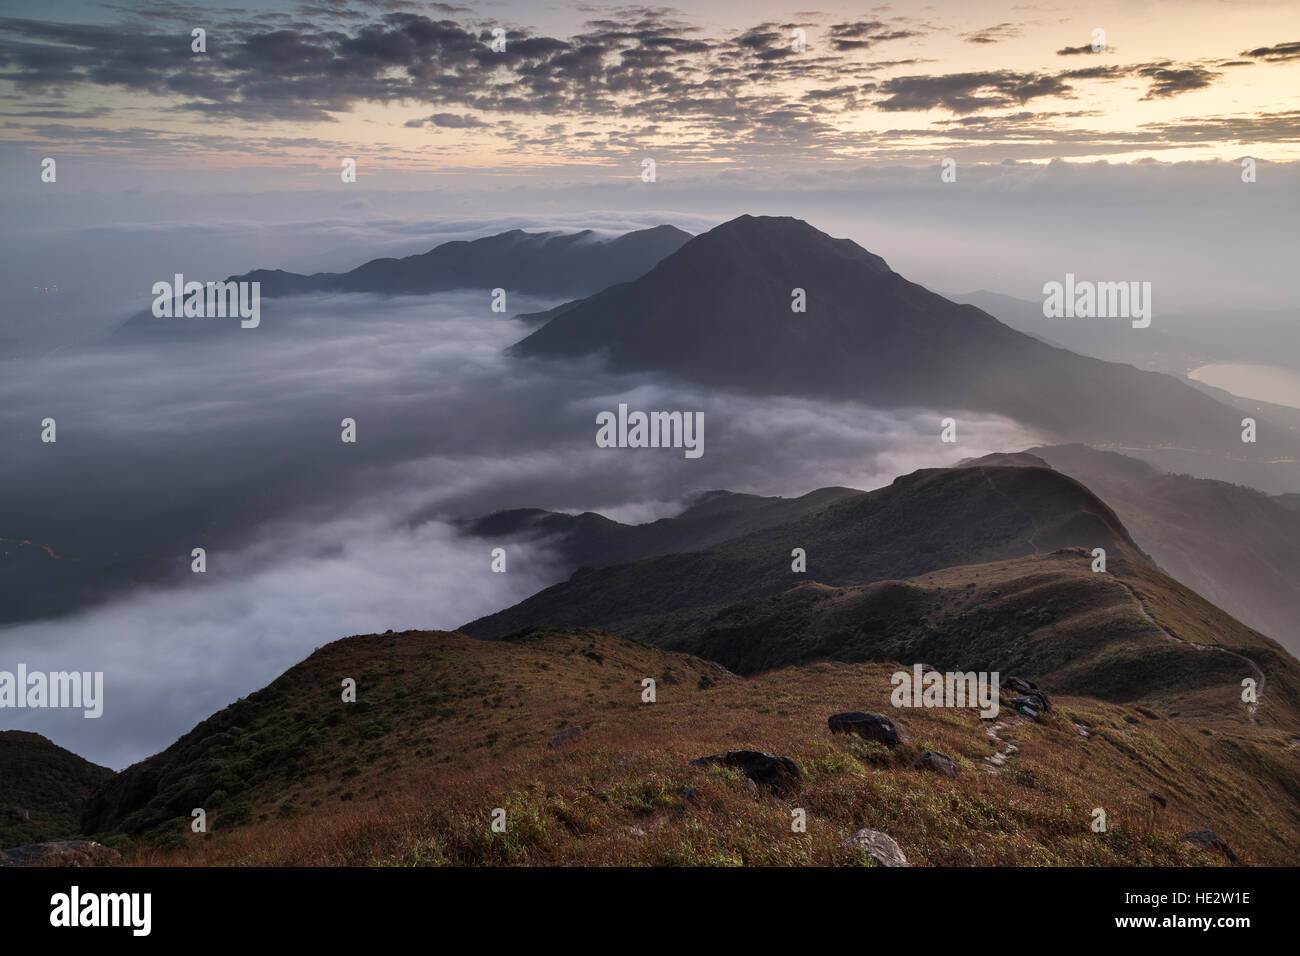 Clouds rolling over a mountain on Lantau Island, viewed from the Lantau Peak (the 2nd highest peak in Hong Kong, - Stock Image